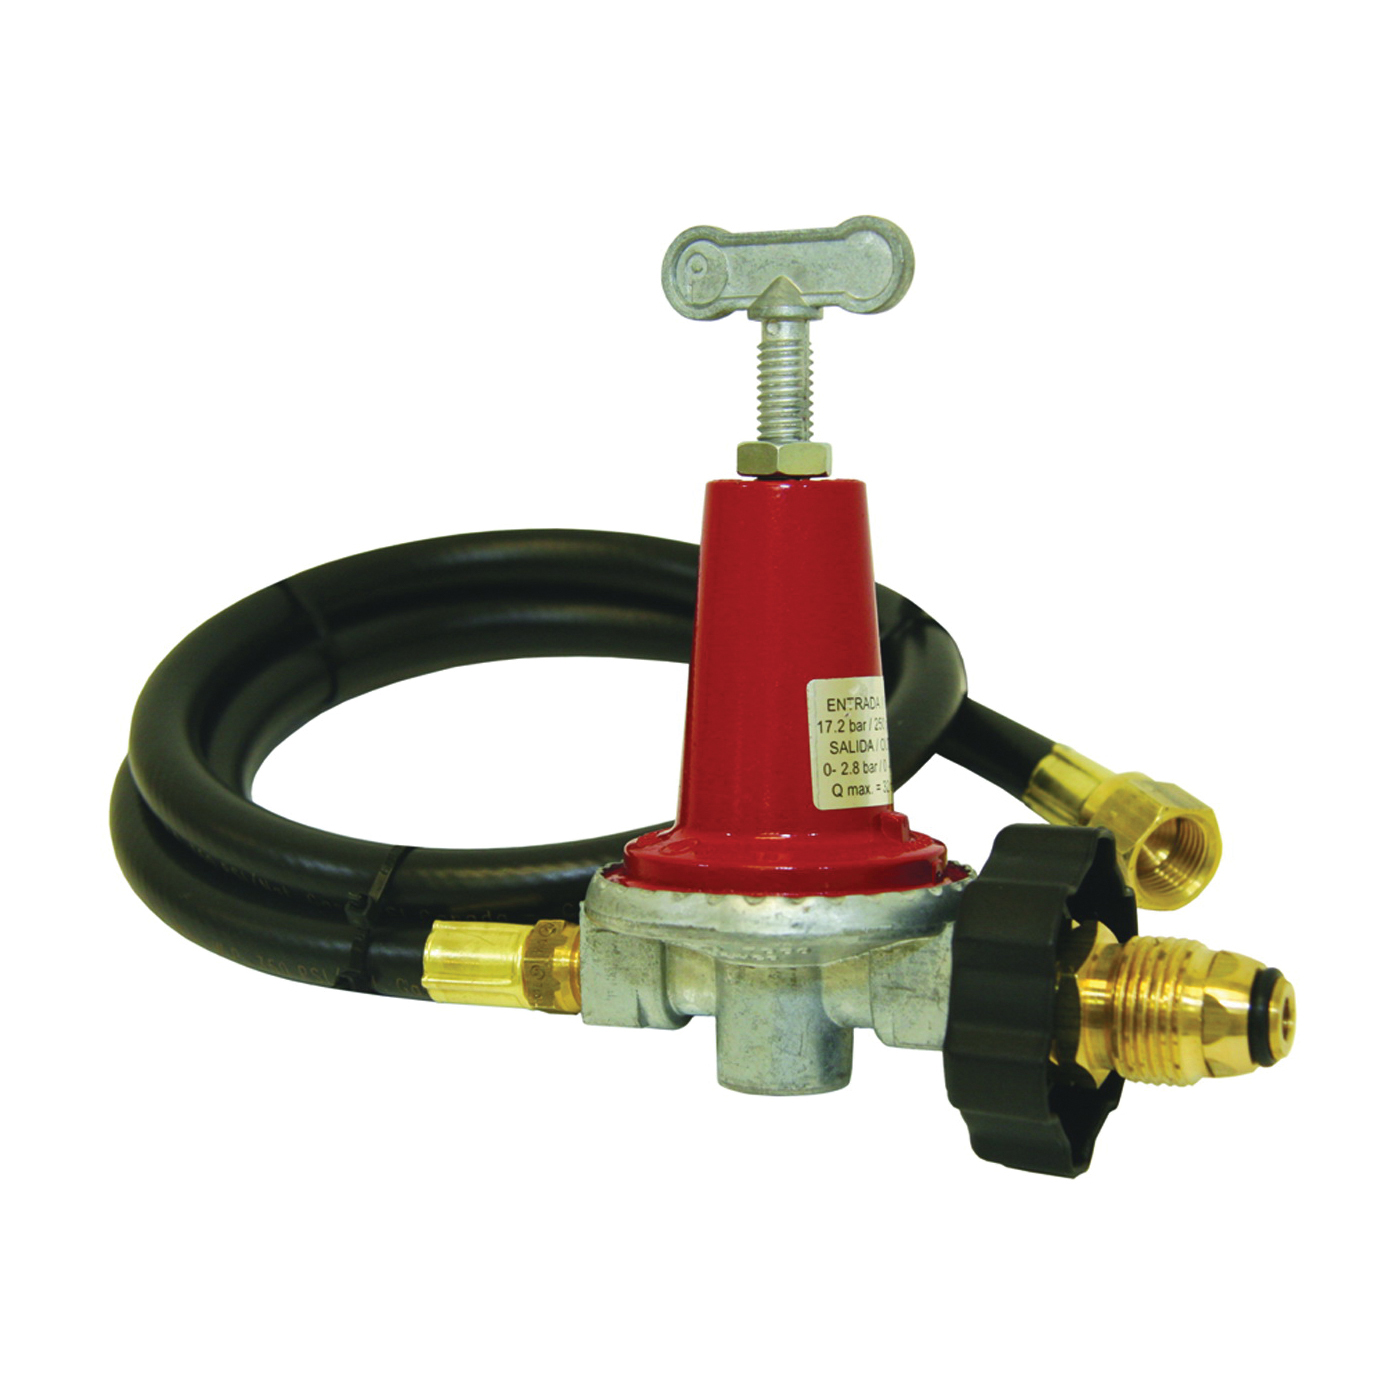 Picture of Bayou Classic 5HPR-40 Regulator and LPG Hose, 3/8 in Connection, 48 in L Hose